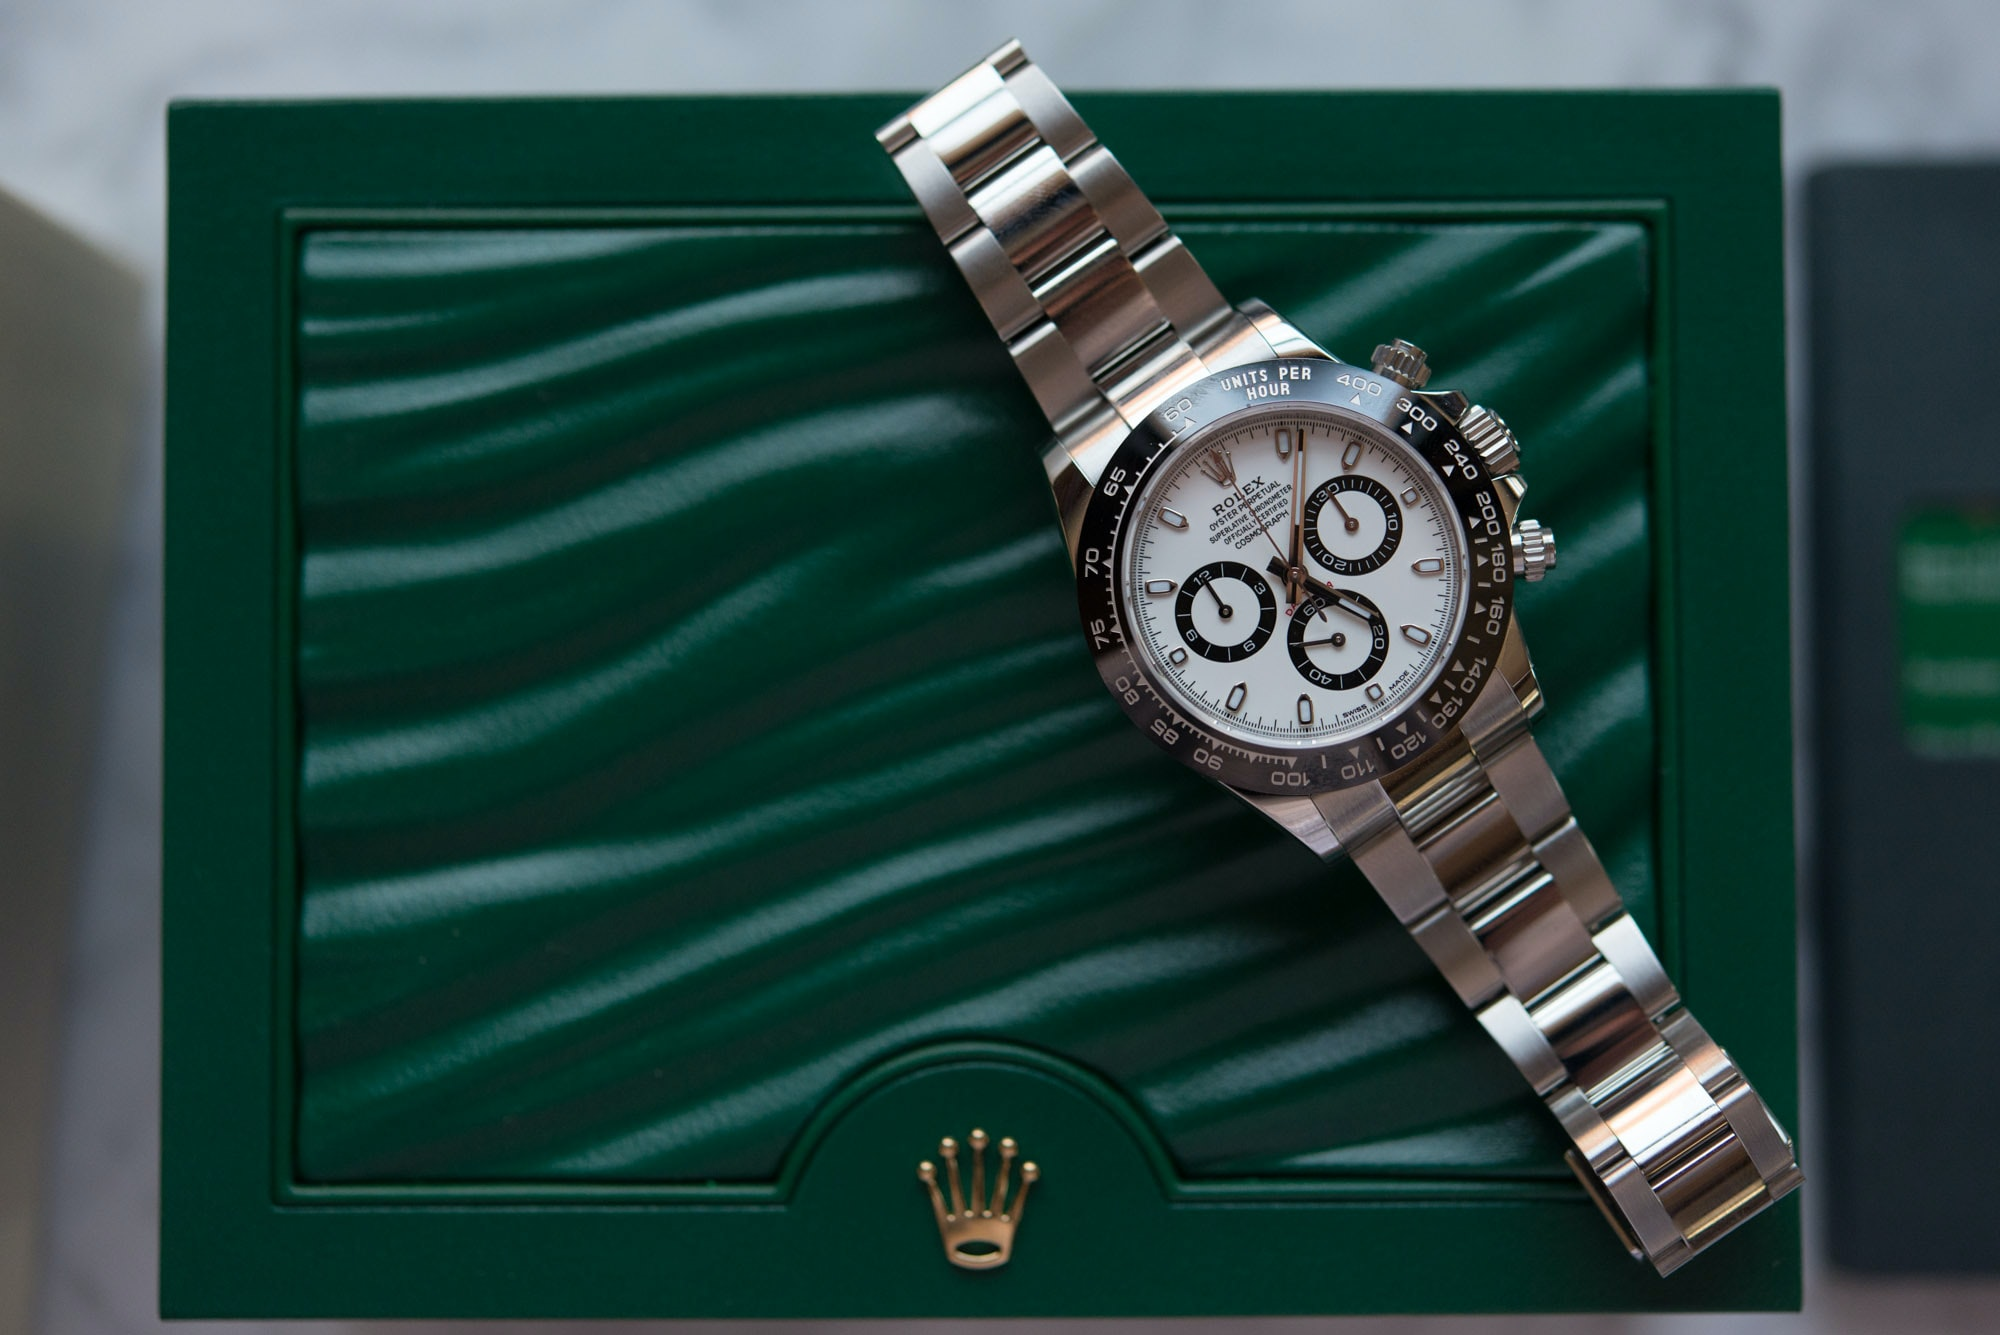 In Conversation: John Mayer And Ben Clymer Discuss The New Rolex Daytona As Early Owners In Conversation: John Mayer And Ben Clymer Discuss The New Rolex Daytona As Early Owners JohnMayerNewDaytona 11